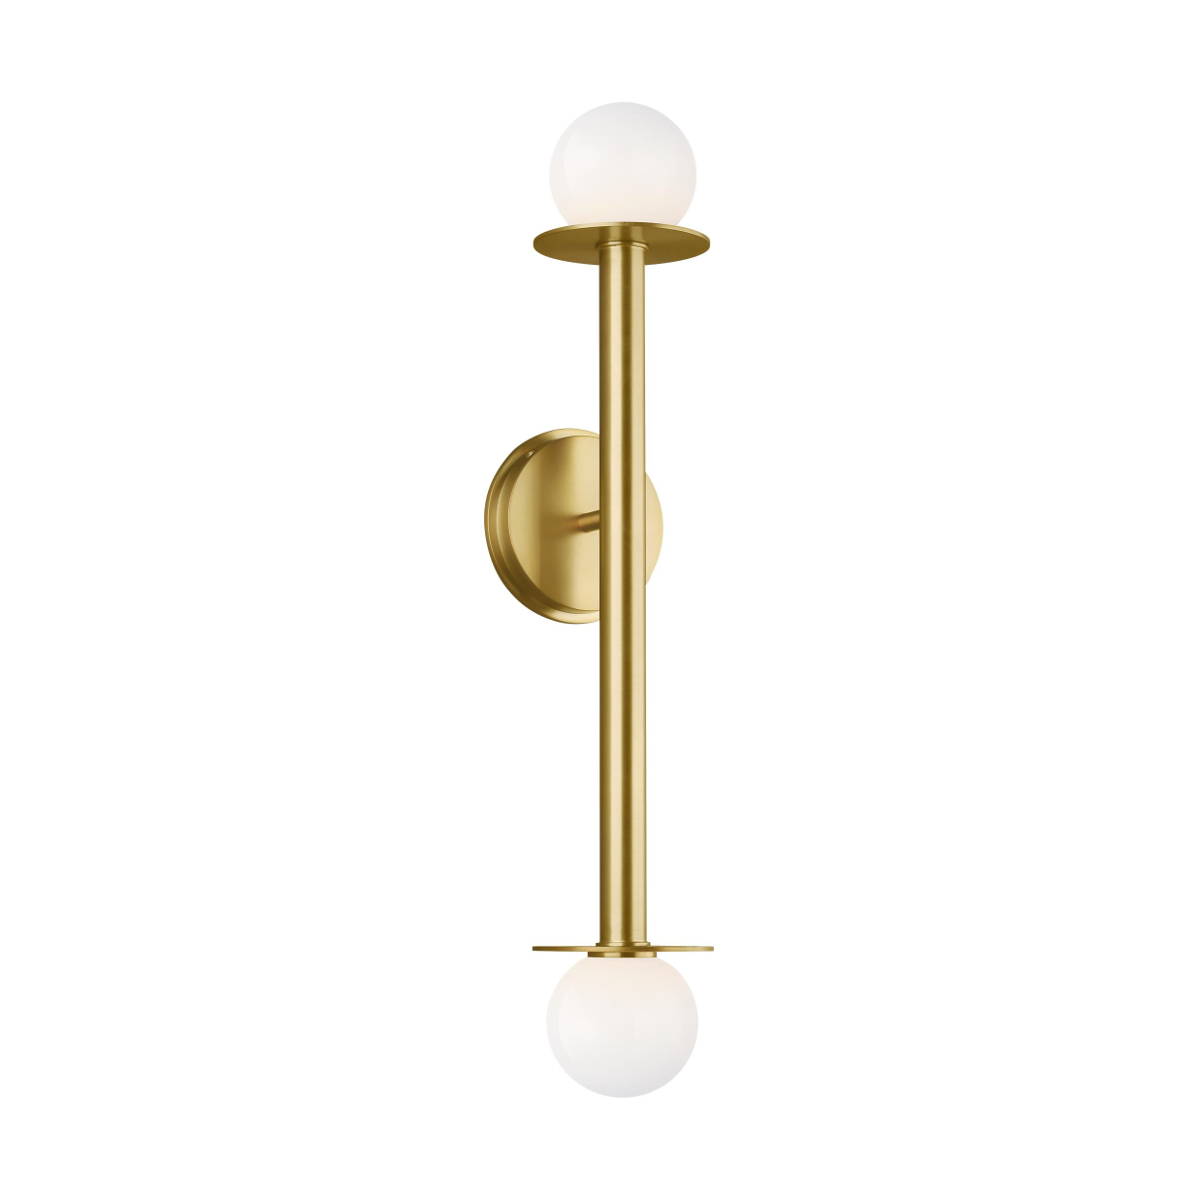 two round white balls at either end of a thick steel vertical brass rod with round mounting base